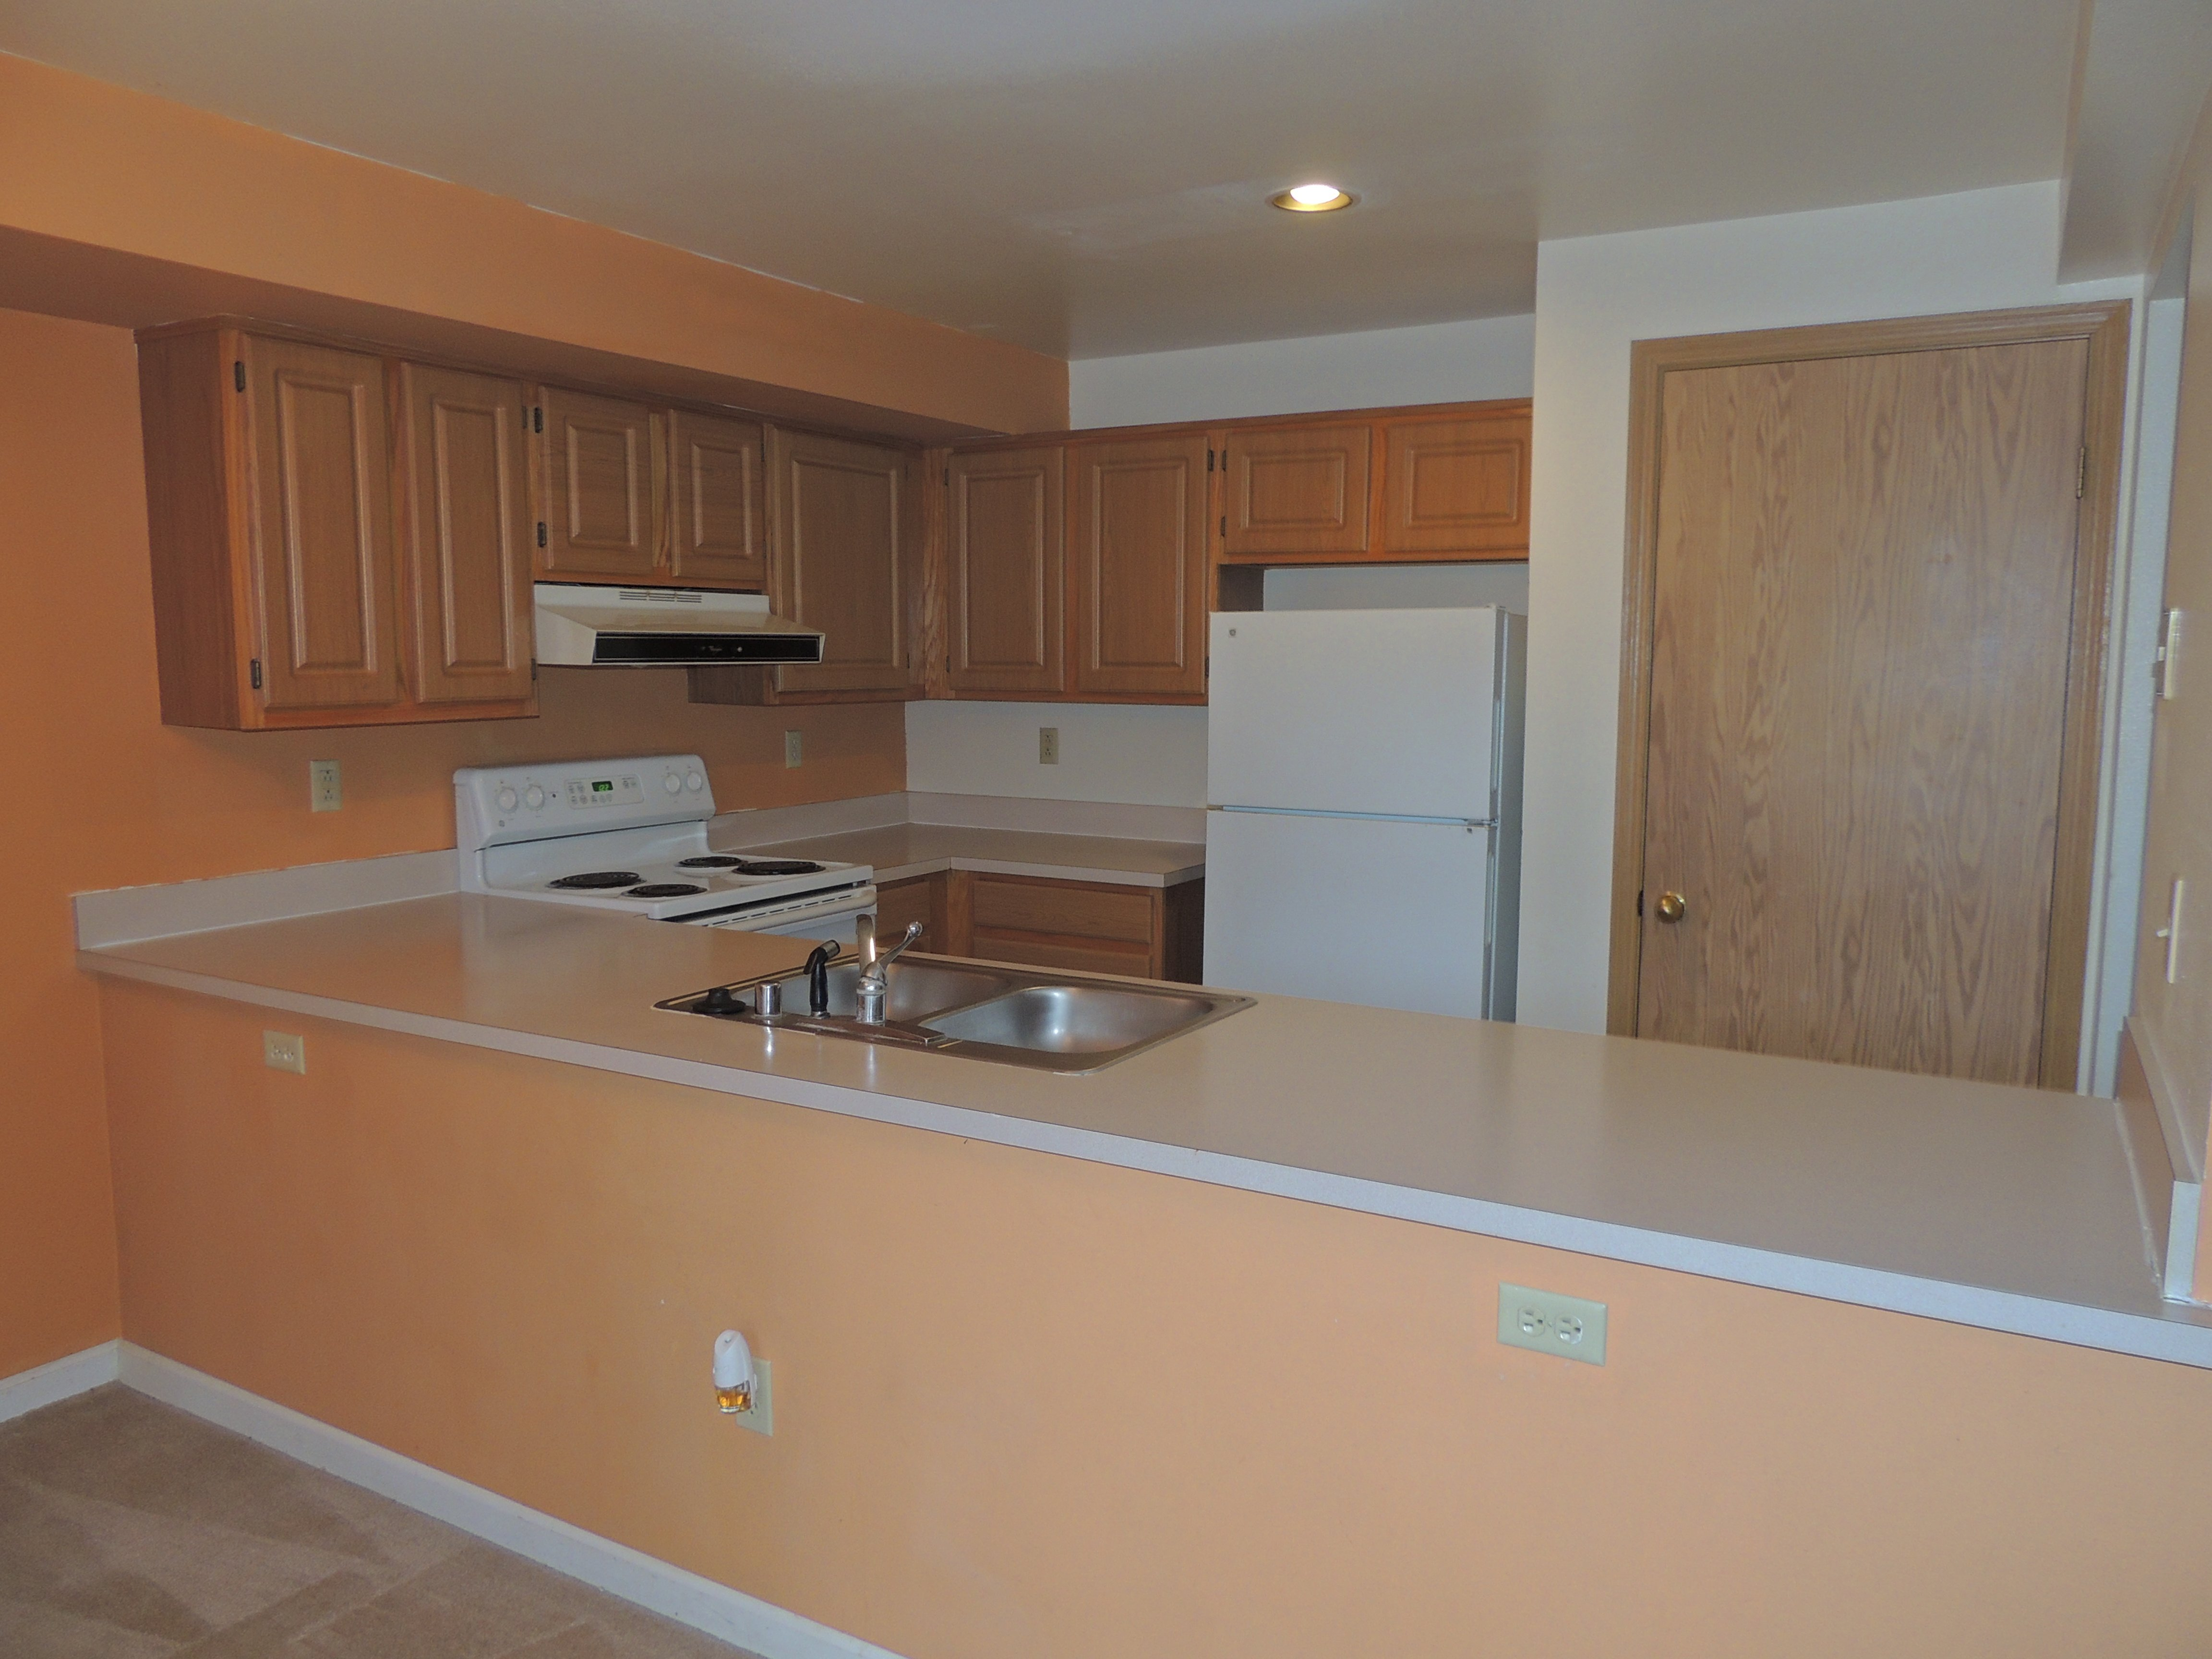 Home For Sale In Puyallup 98374 3939 10th St Se A 1